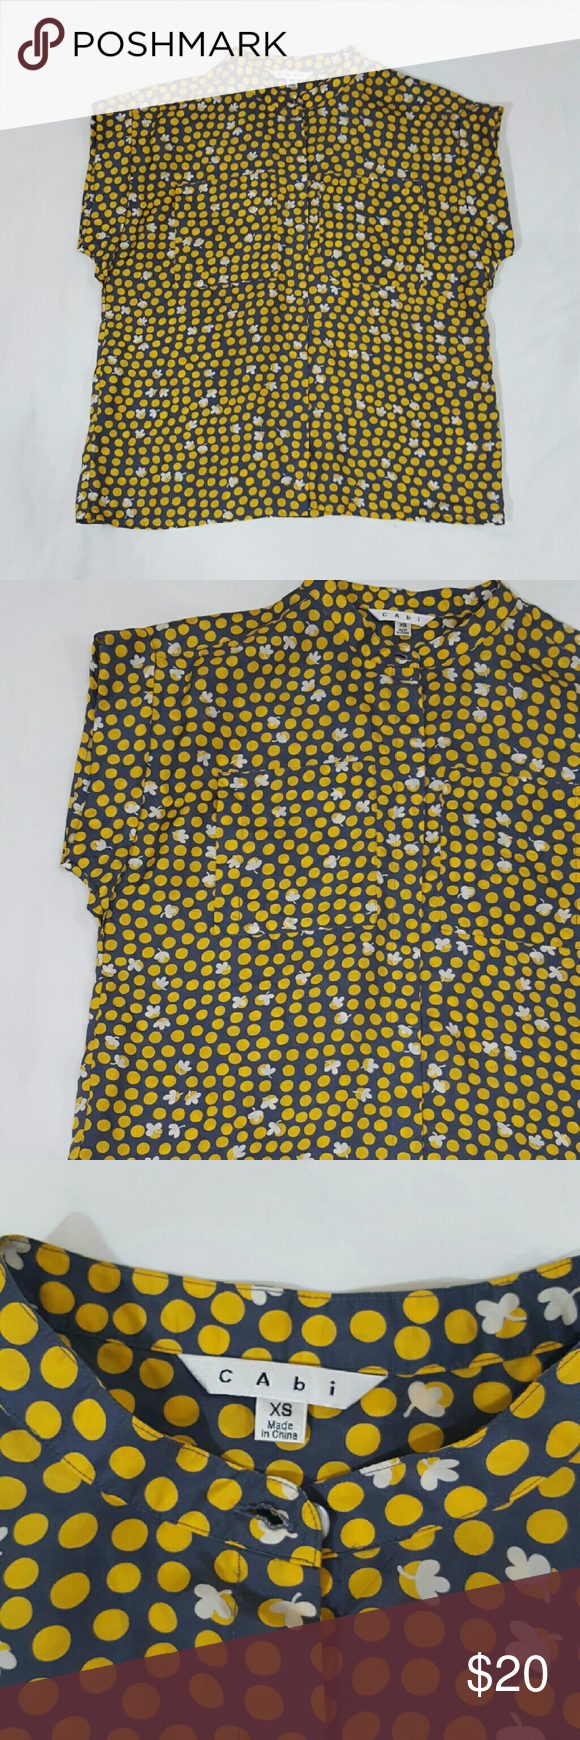 f4f6cbb5e66e48 CAbi Button Front Gray/Yellow Clover Polka Dots XS CAbi women's blouse  button down. Size XS. 100% Silk. Short sleeve. Side pockets. Style#183  Length: 24